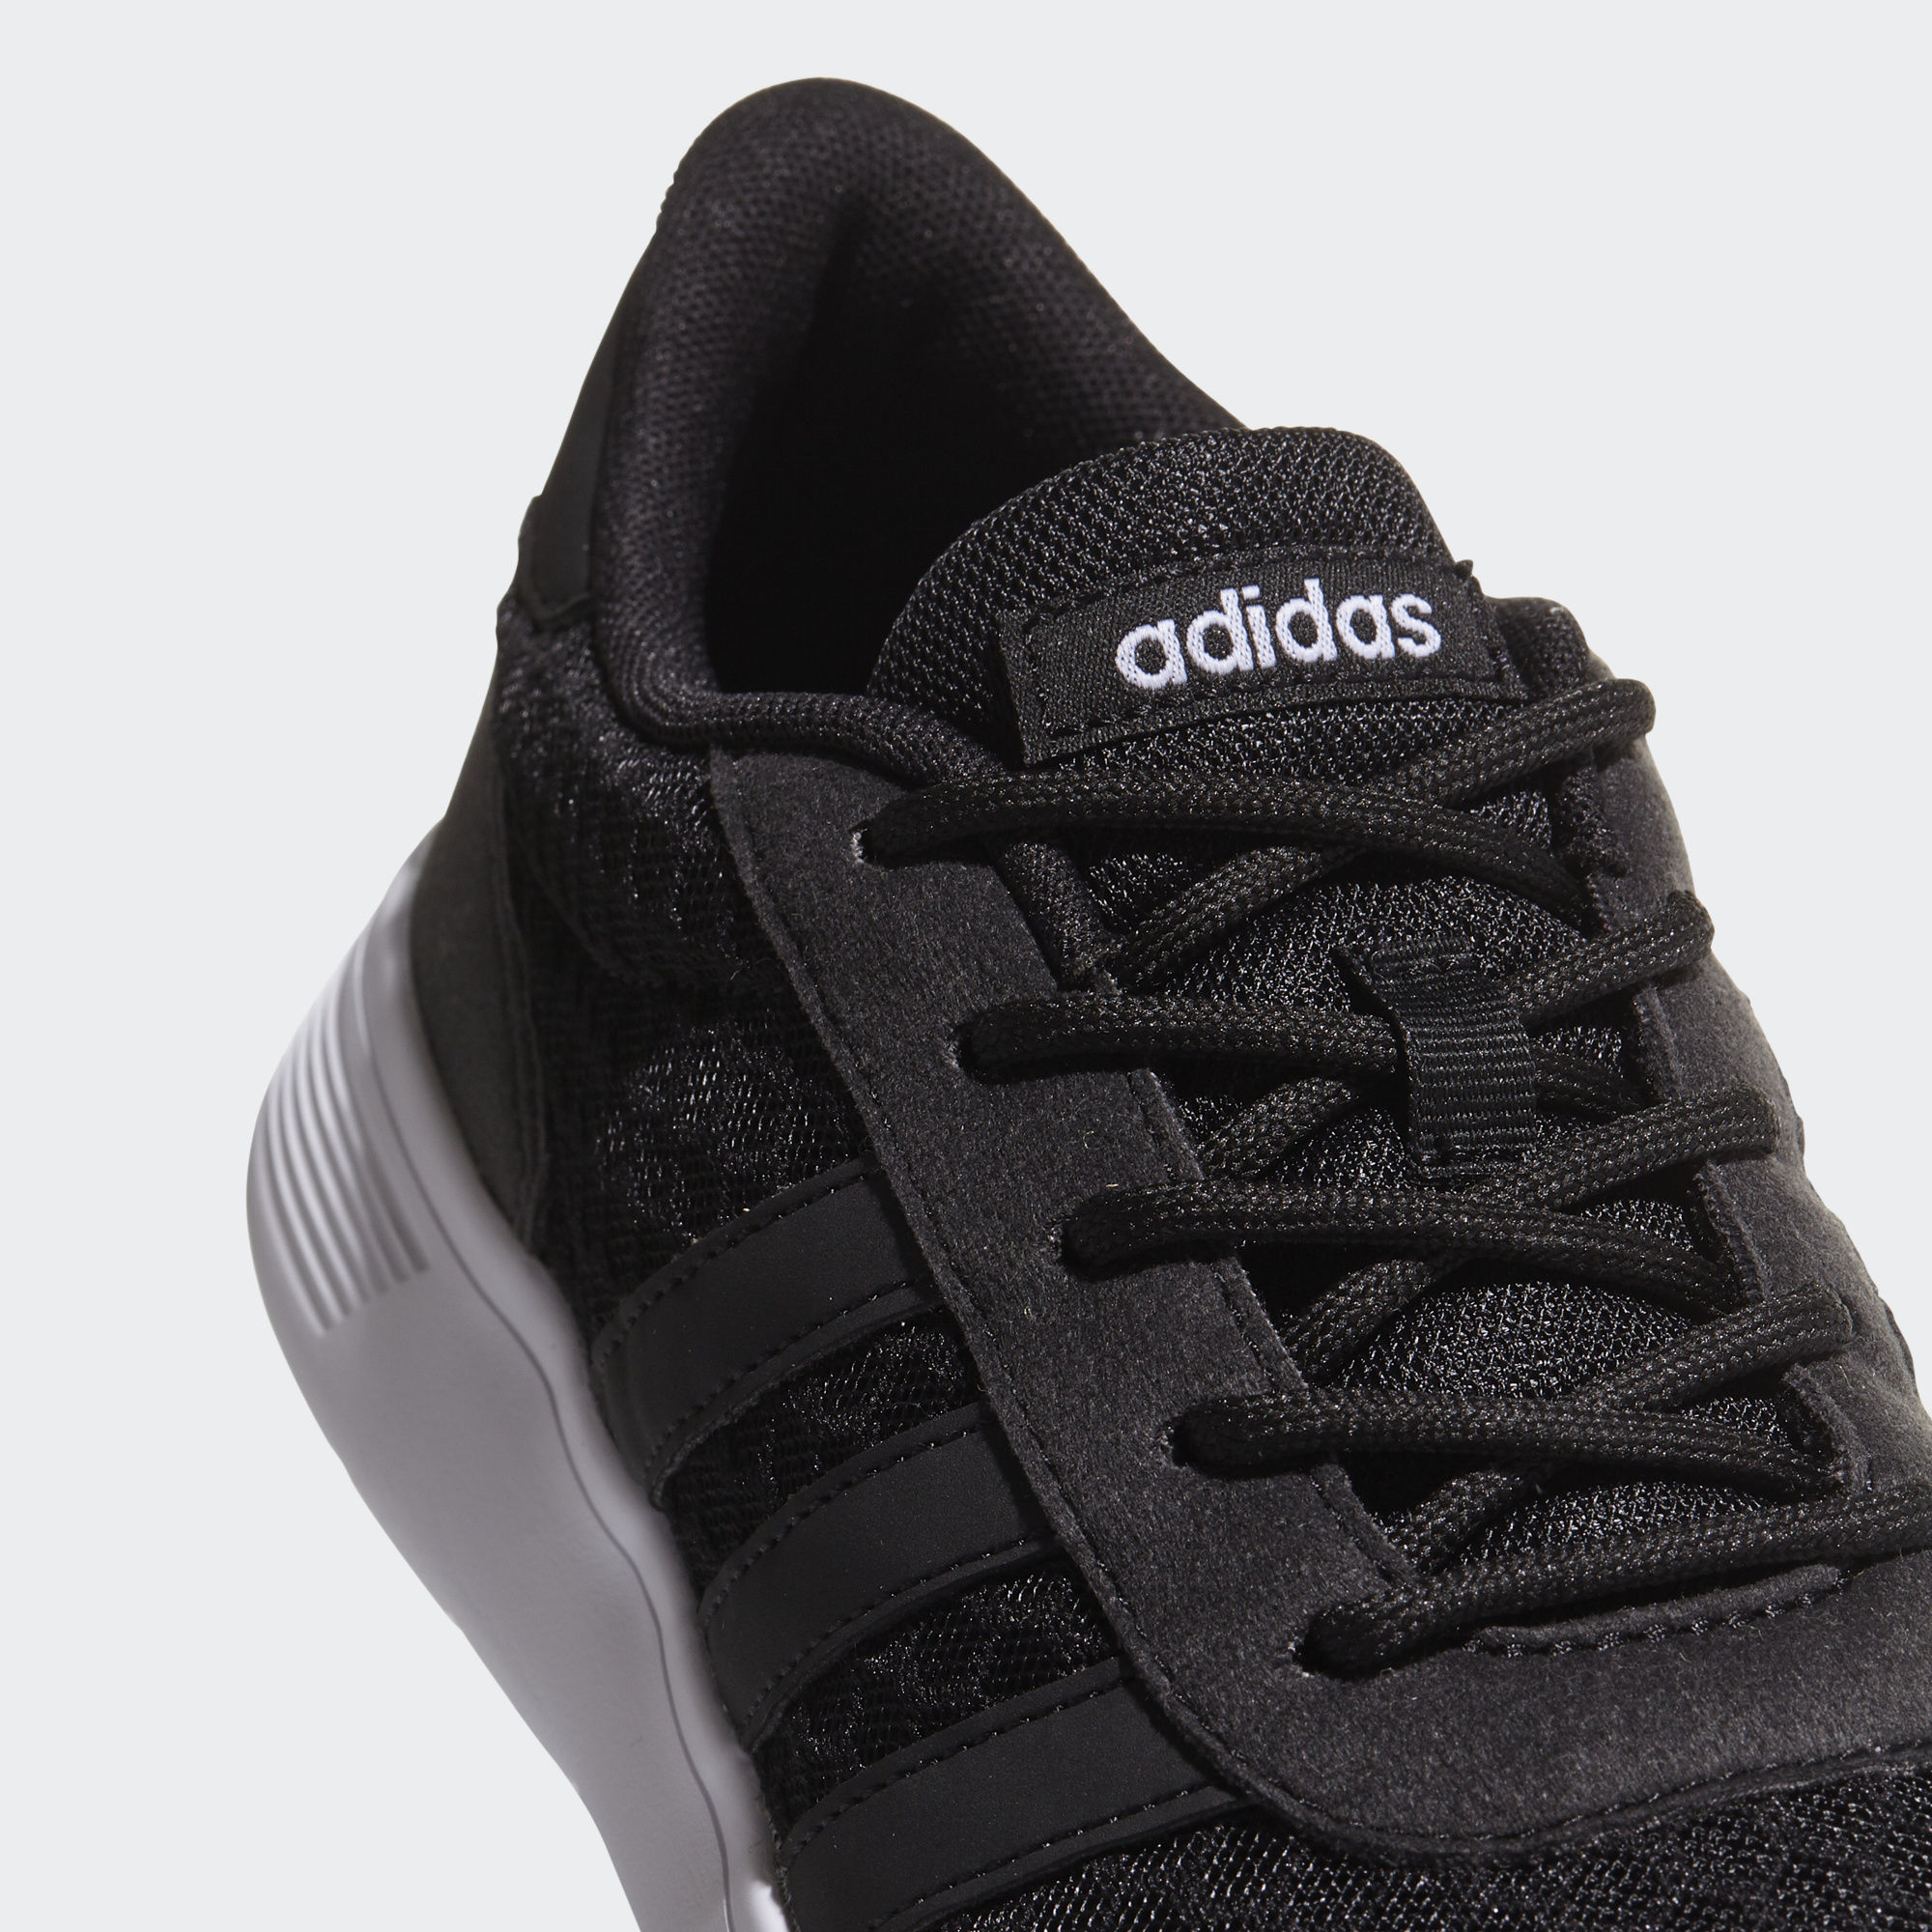 Available from 10.11 Adidas running shoes AW4960